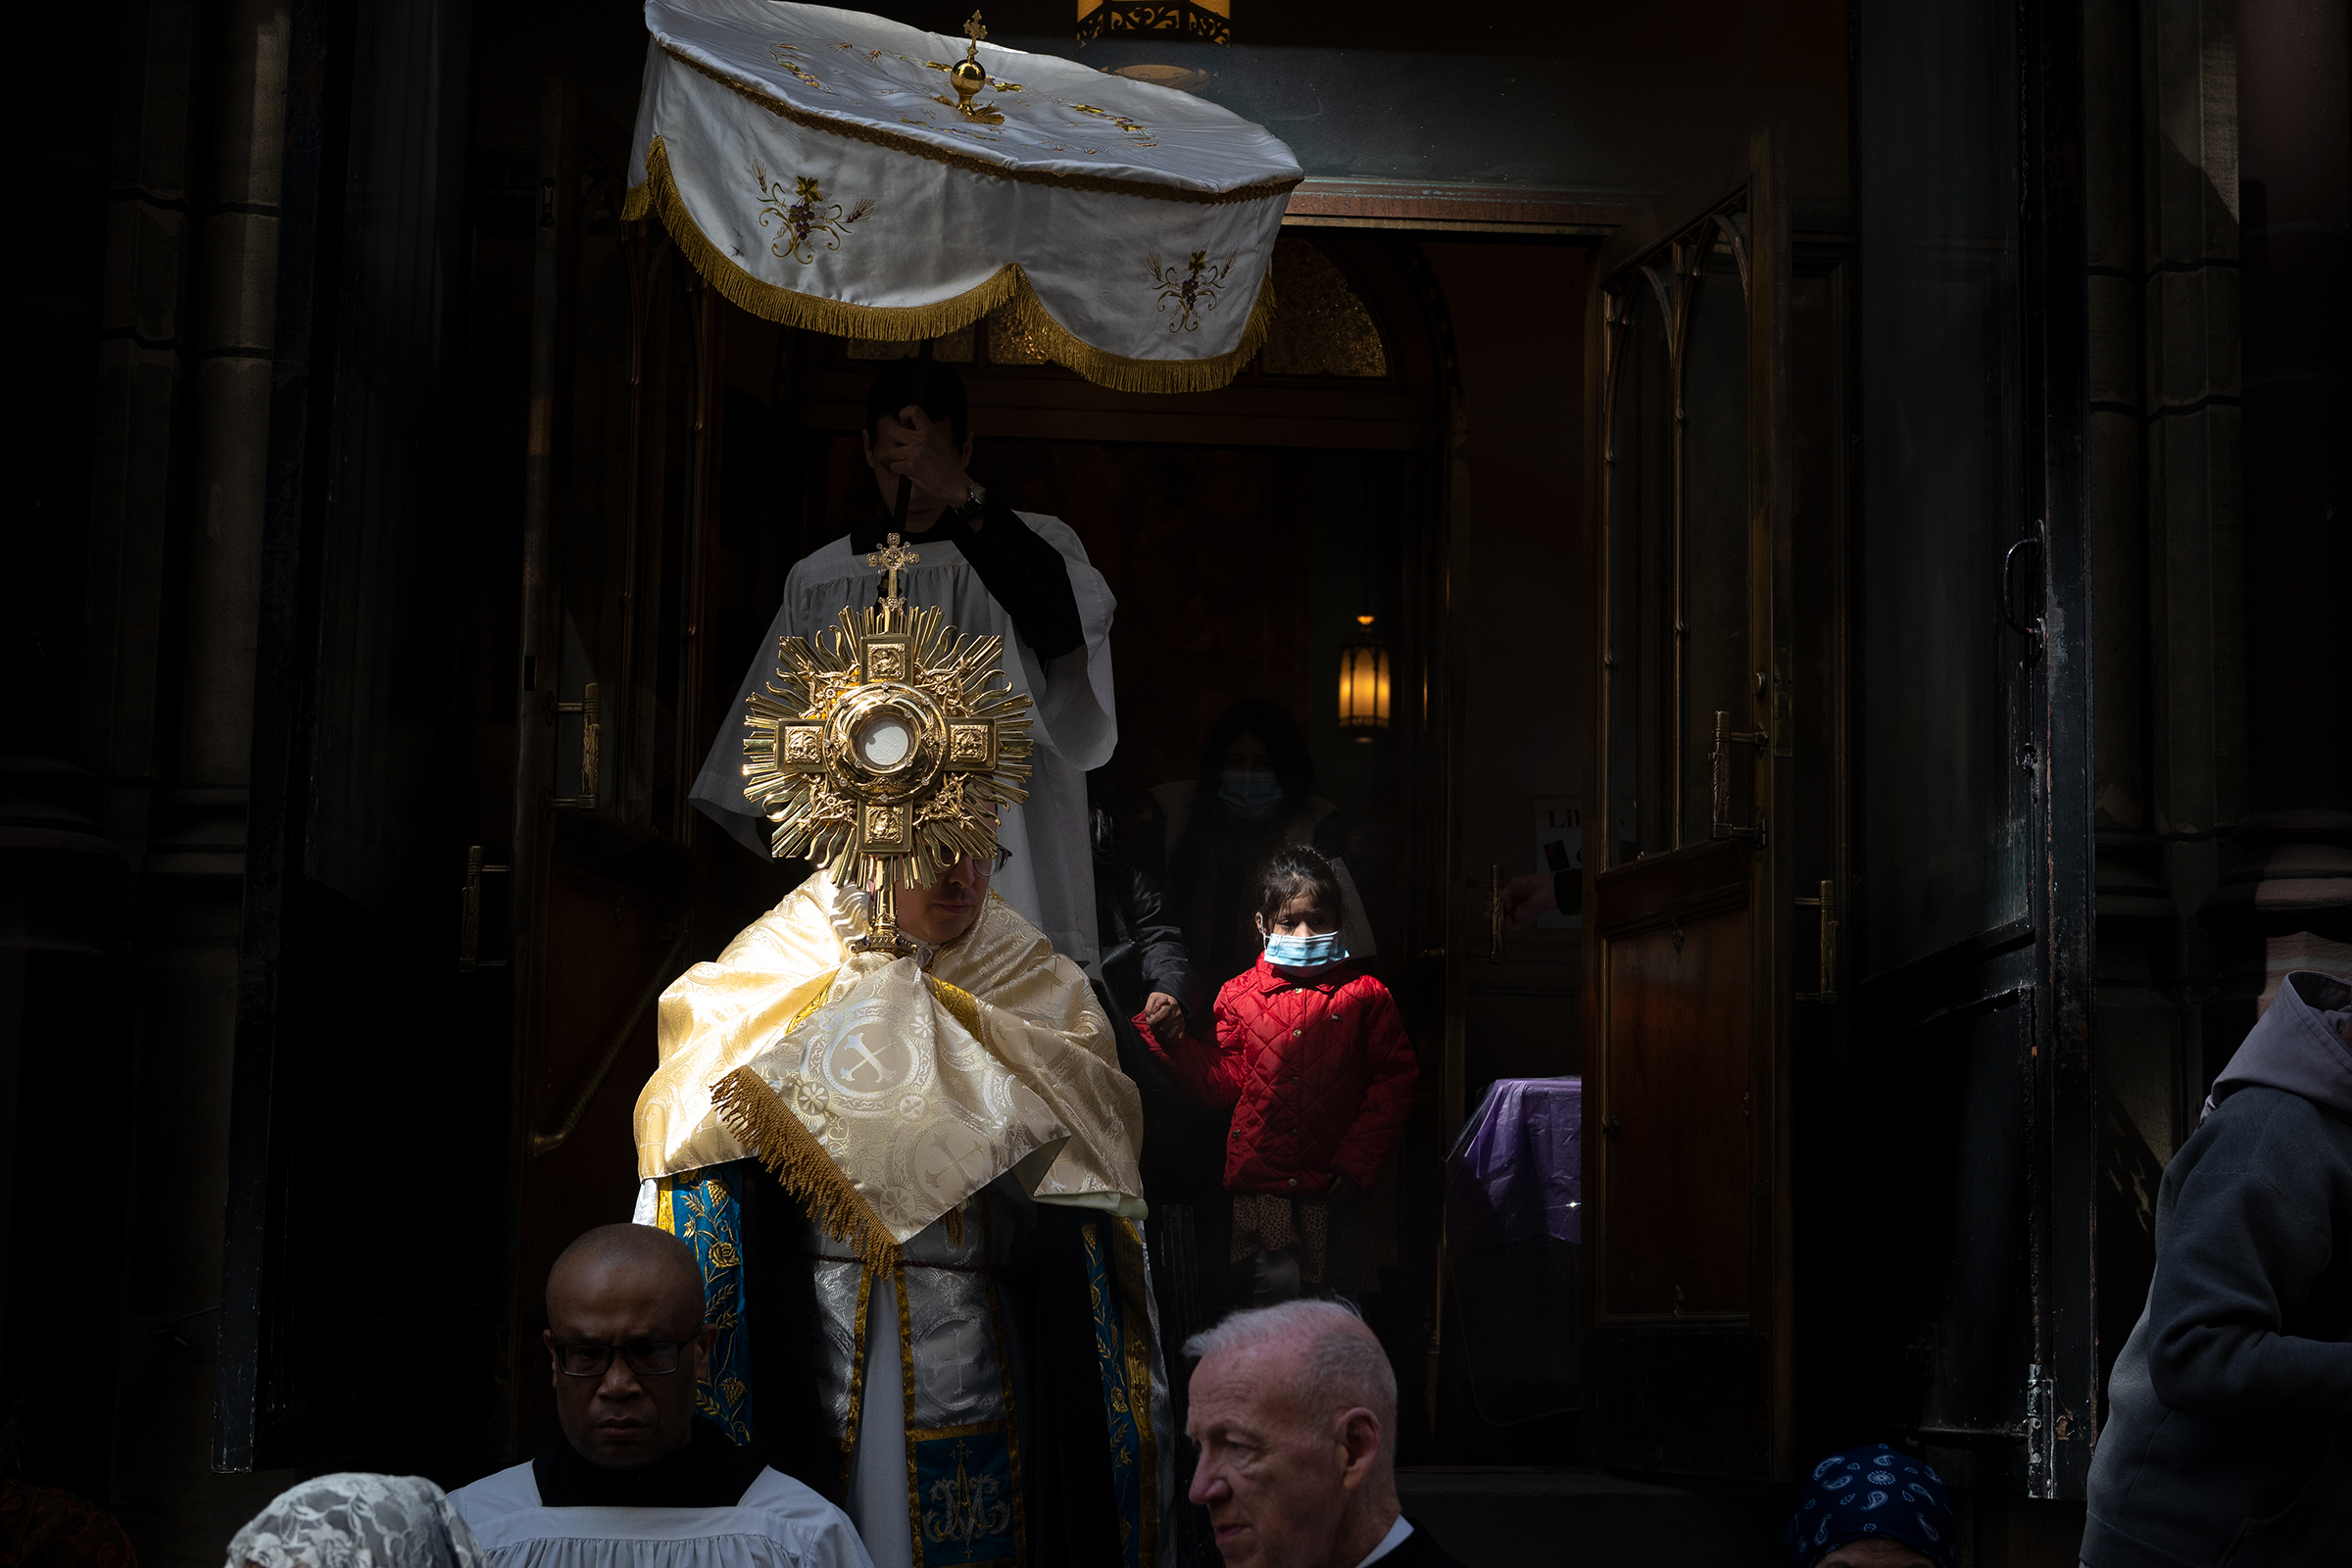 Father John Miara, pastor of the Shrine of the Holy Innocents leads a Eucharistic Procession on December 28, 2020 in New York's Garment District. [Jeffrey Bruno]